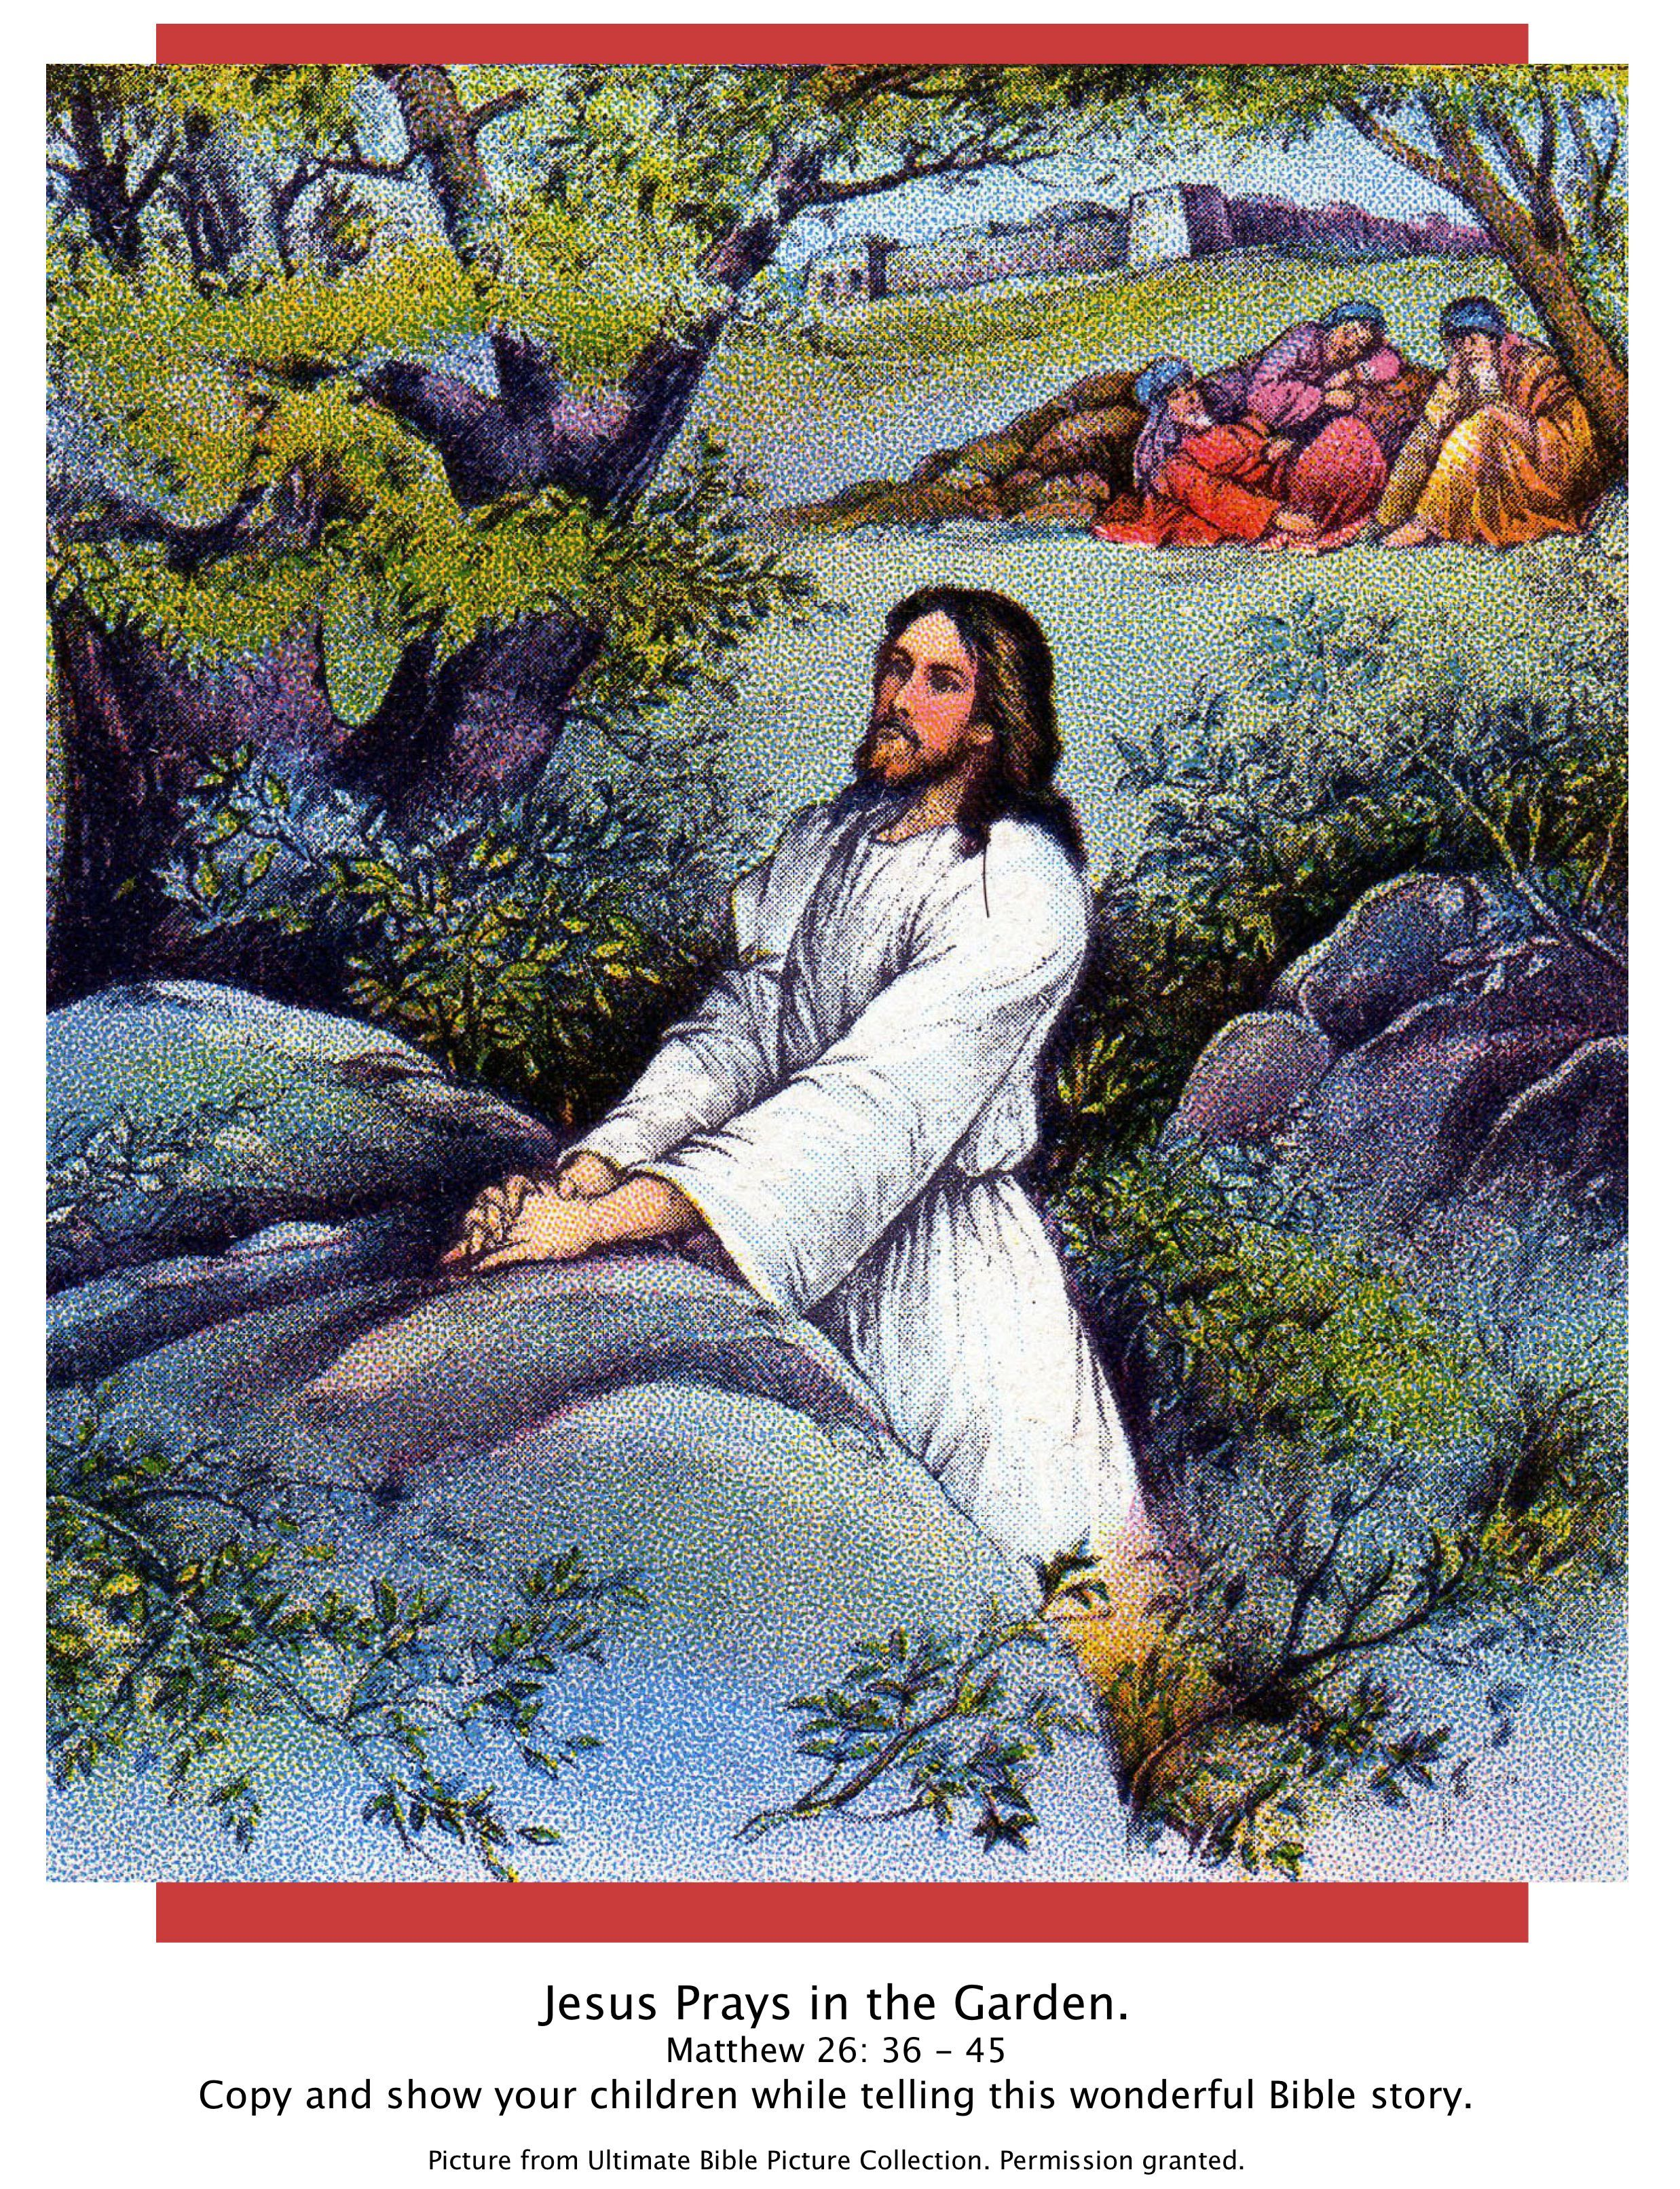 Bible story picture of garden of gethsemane lk 22 39 44 - Jesus in the garden of gethsemane ...